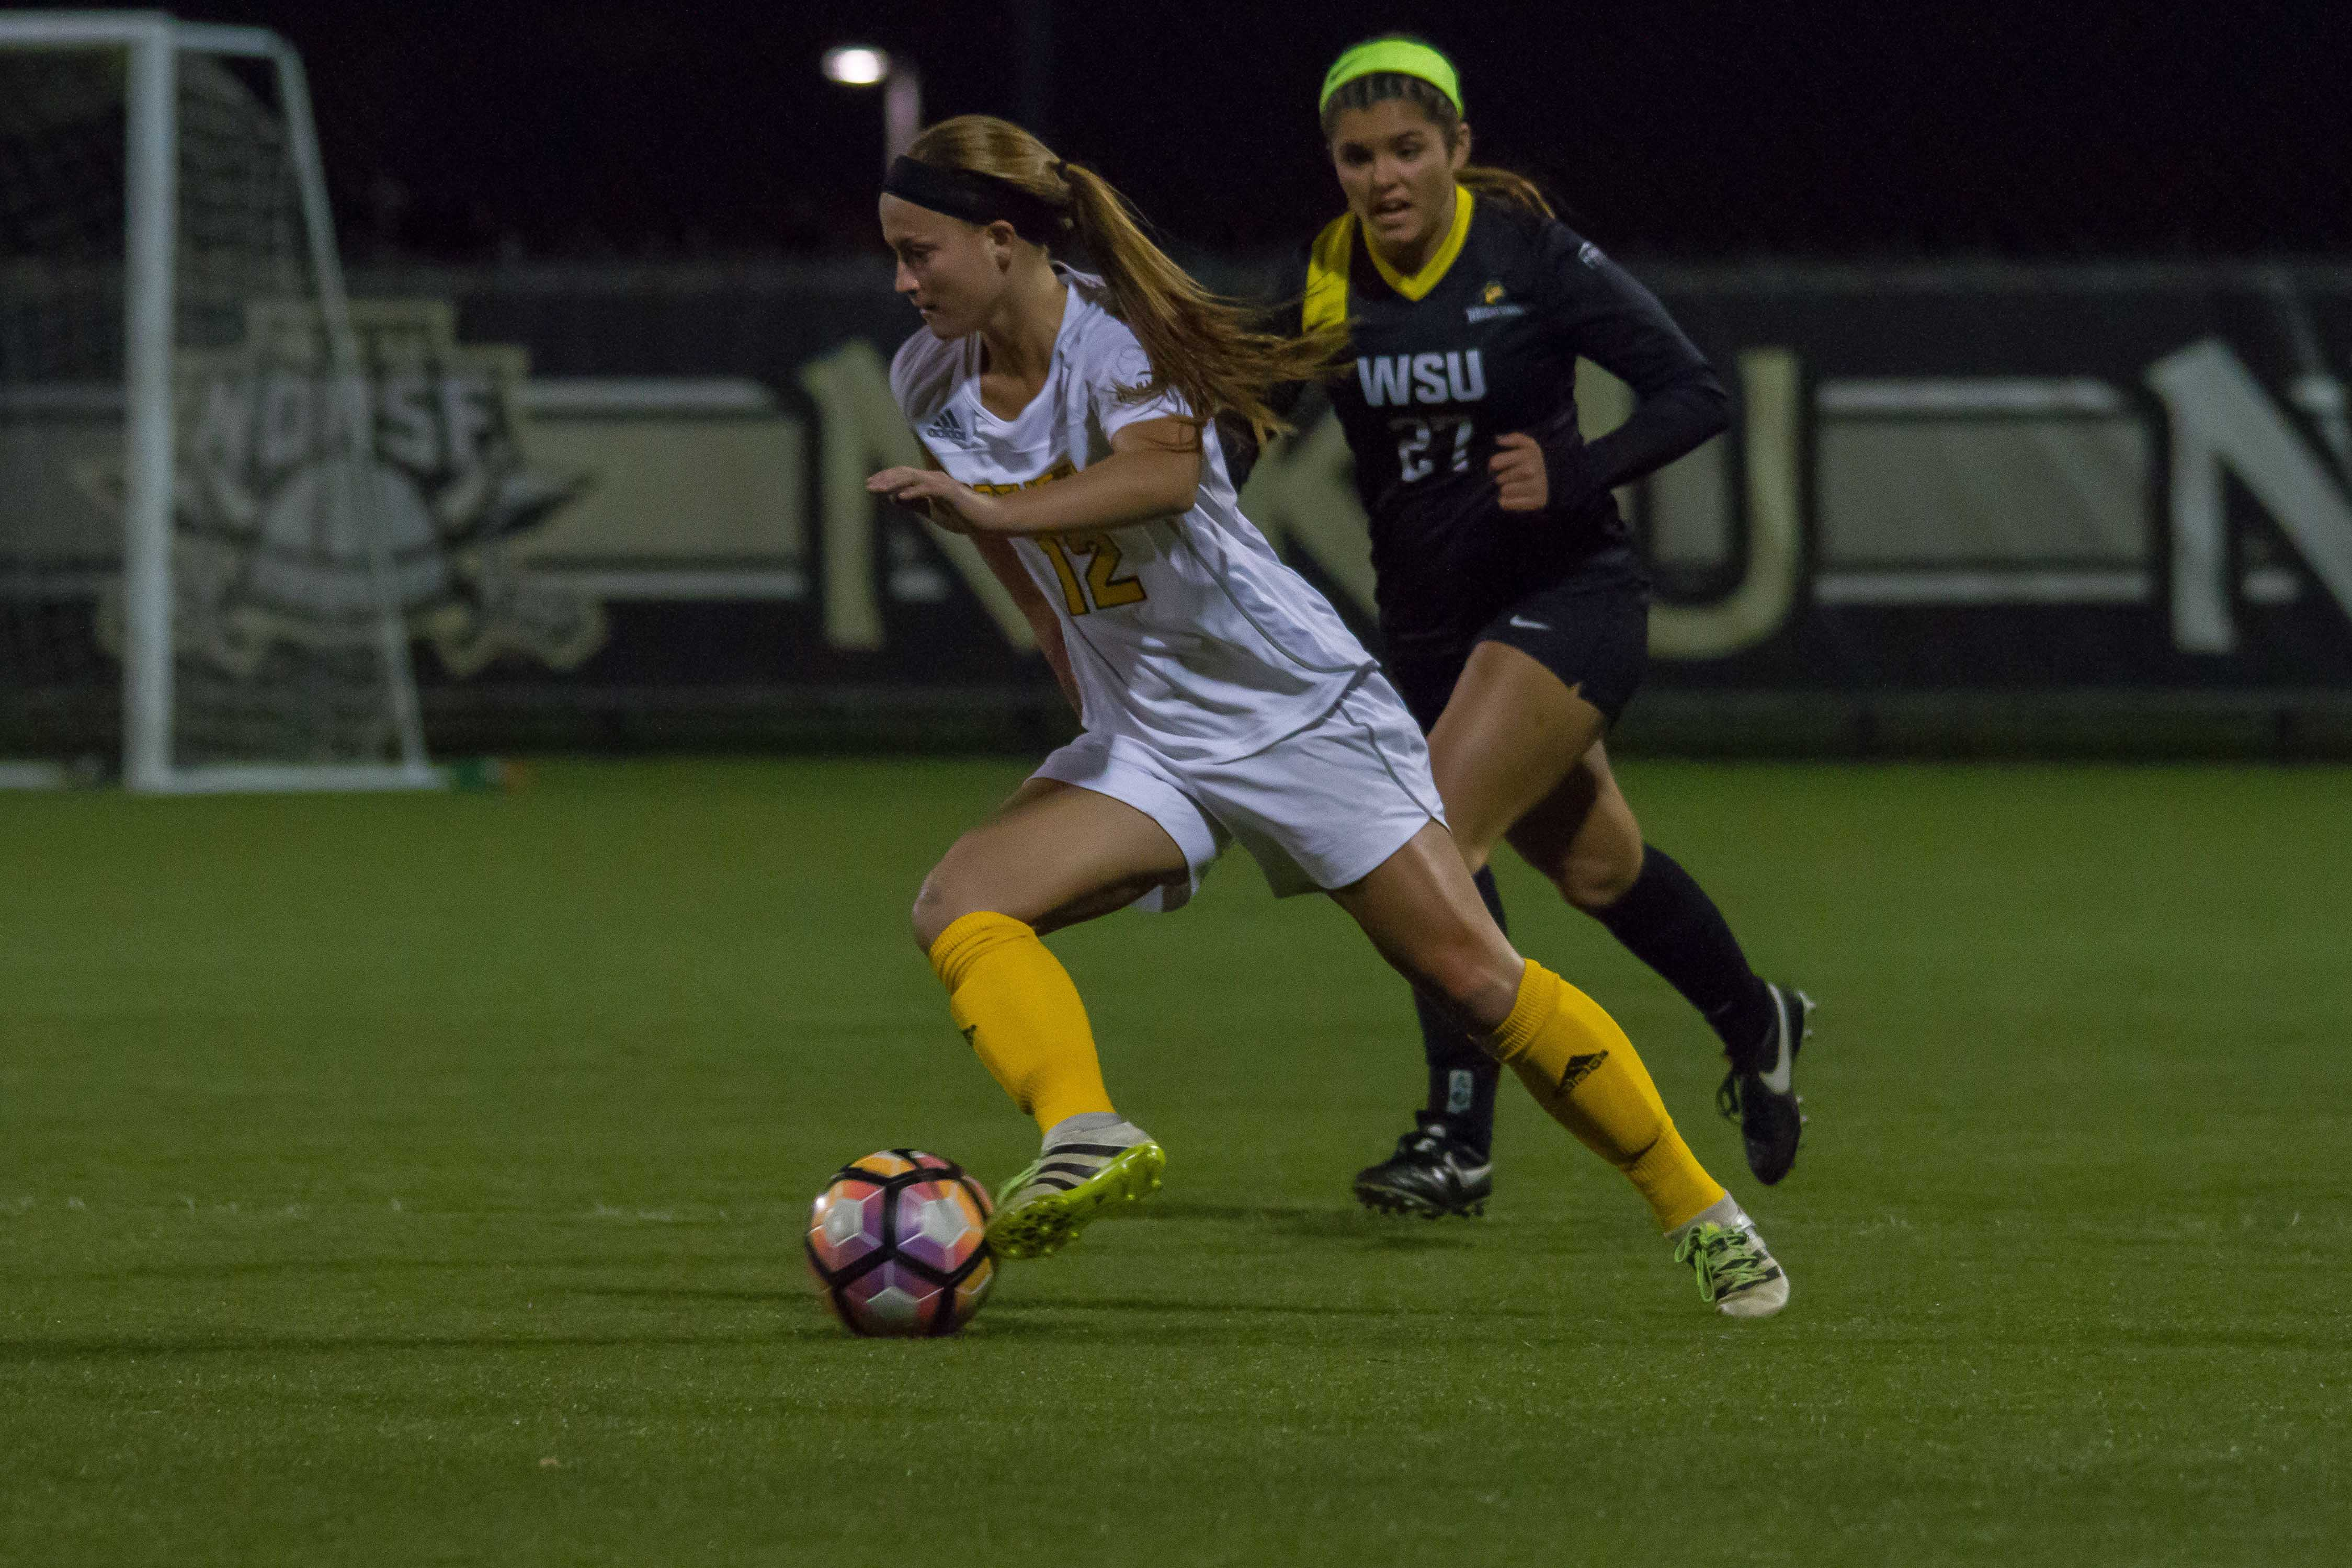 Jessica Frey scored the game winning goal in the 1-0 victory against Wright State in the Horizon League playoffs